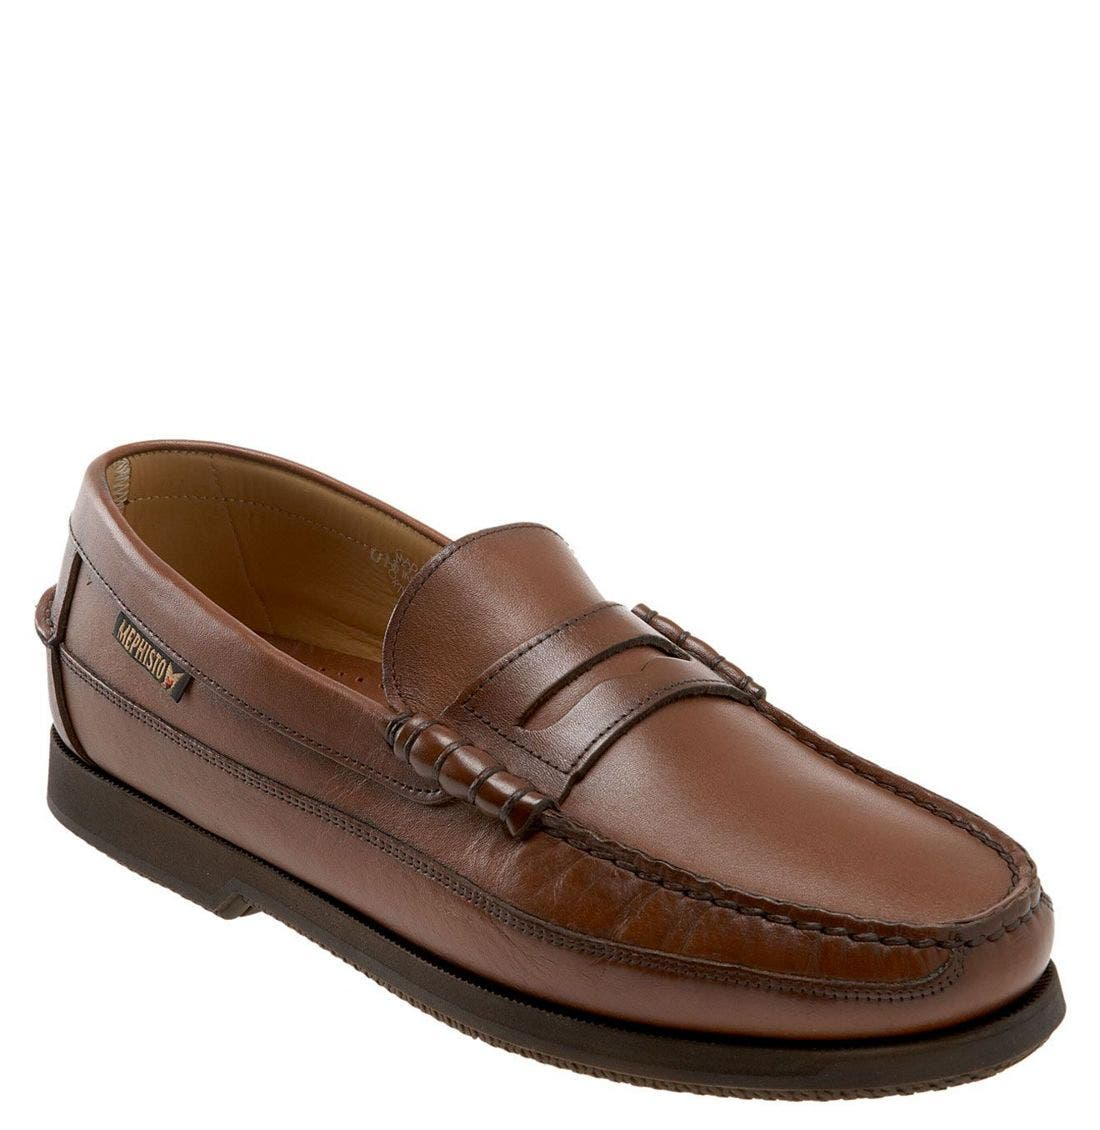 100% Real Cheap Cap Vert' Penny Loafer Mens Rust Leather Mephisto Mens Loafers Slip Ons